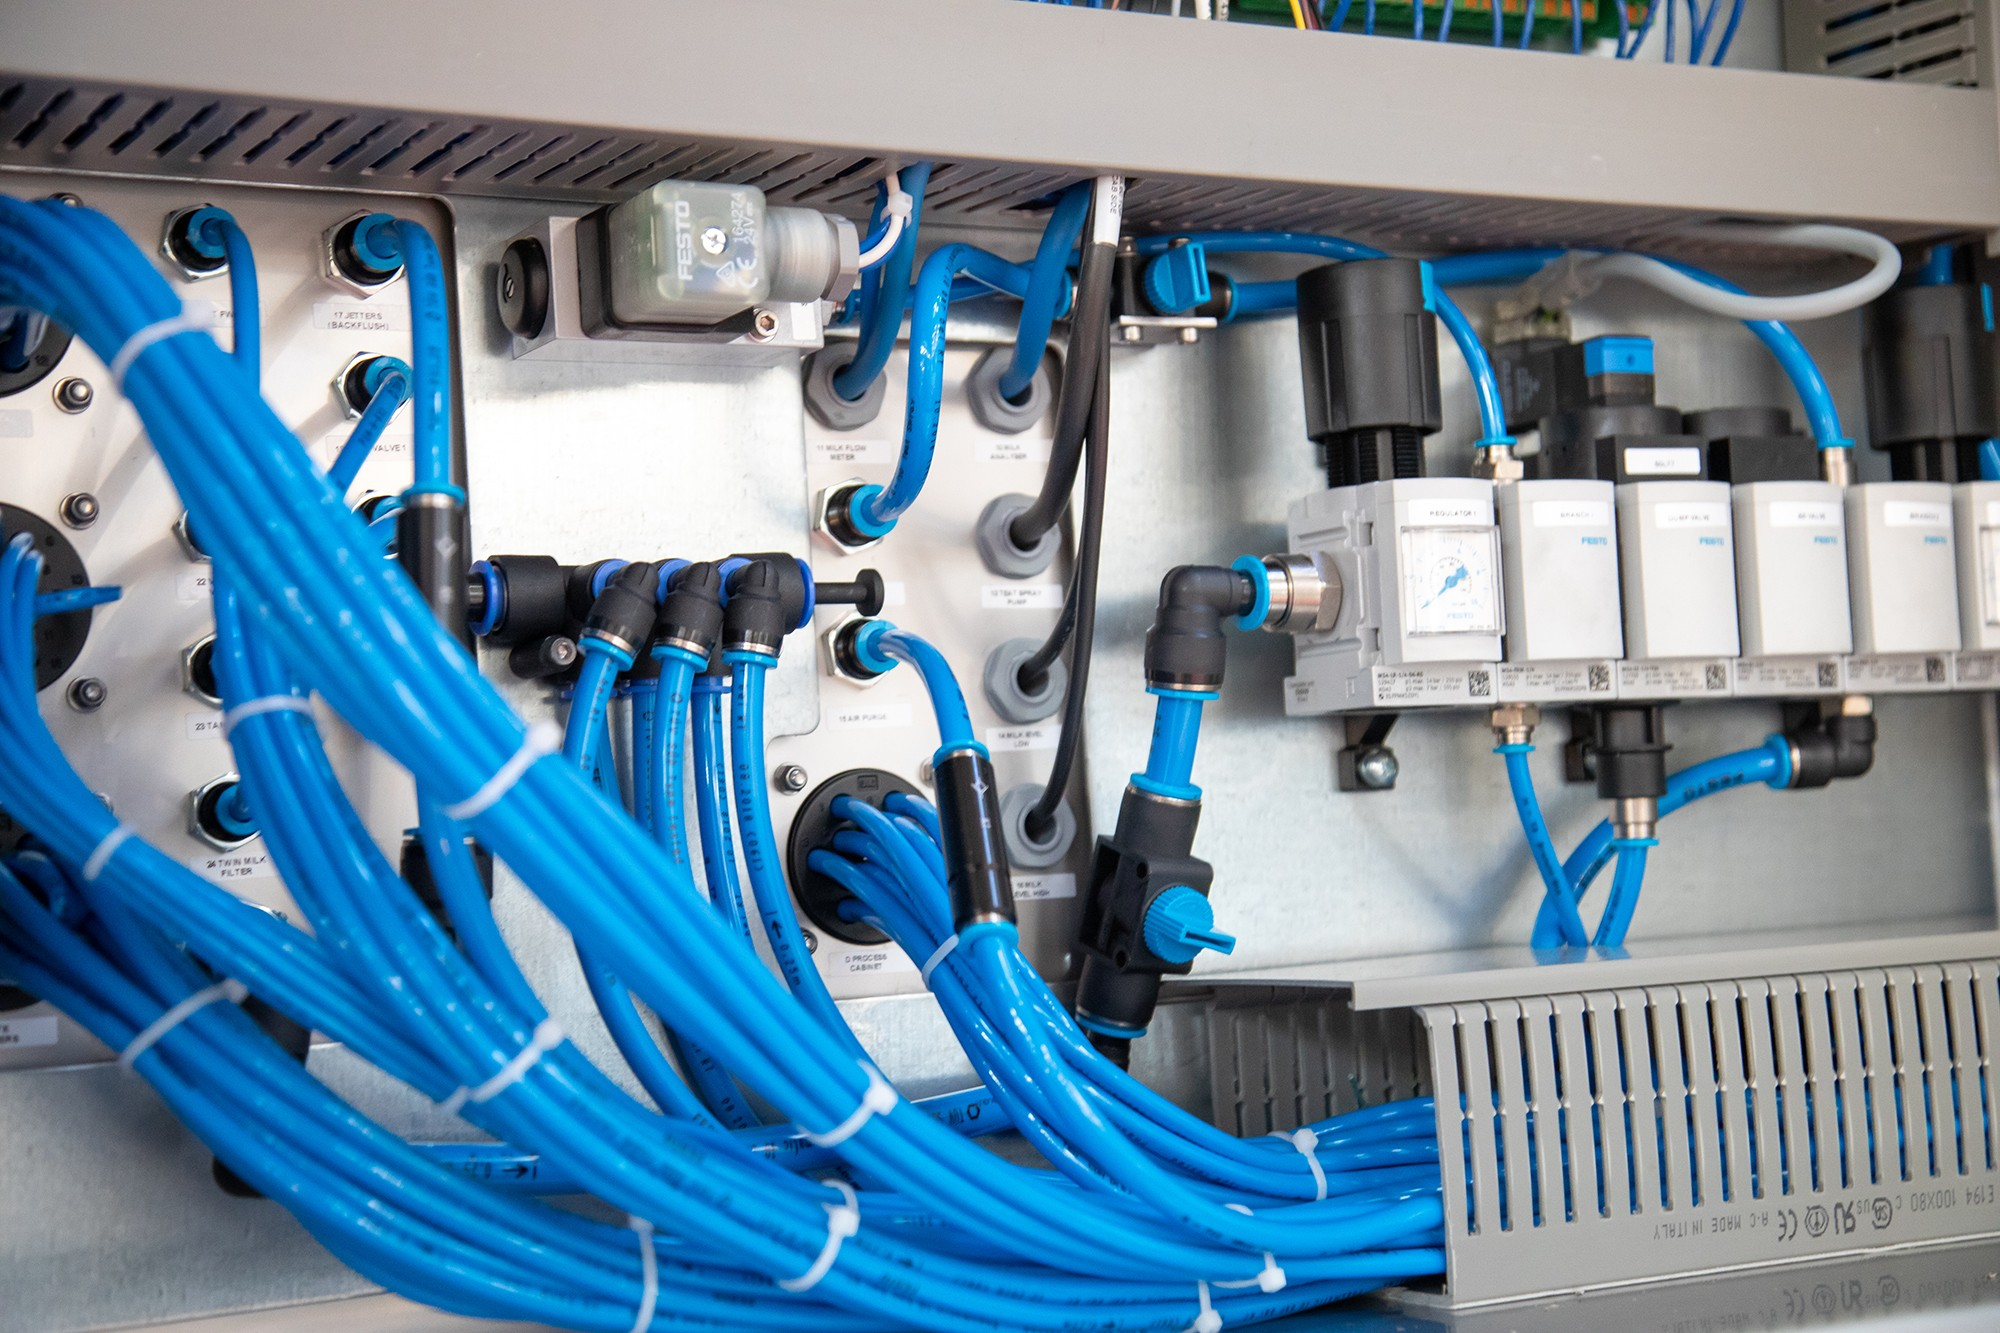 Fullwood Packo » ppfullwood 126 » PP Control & Automation